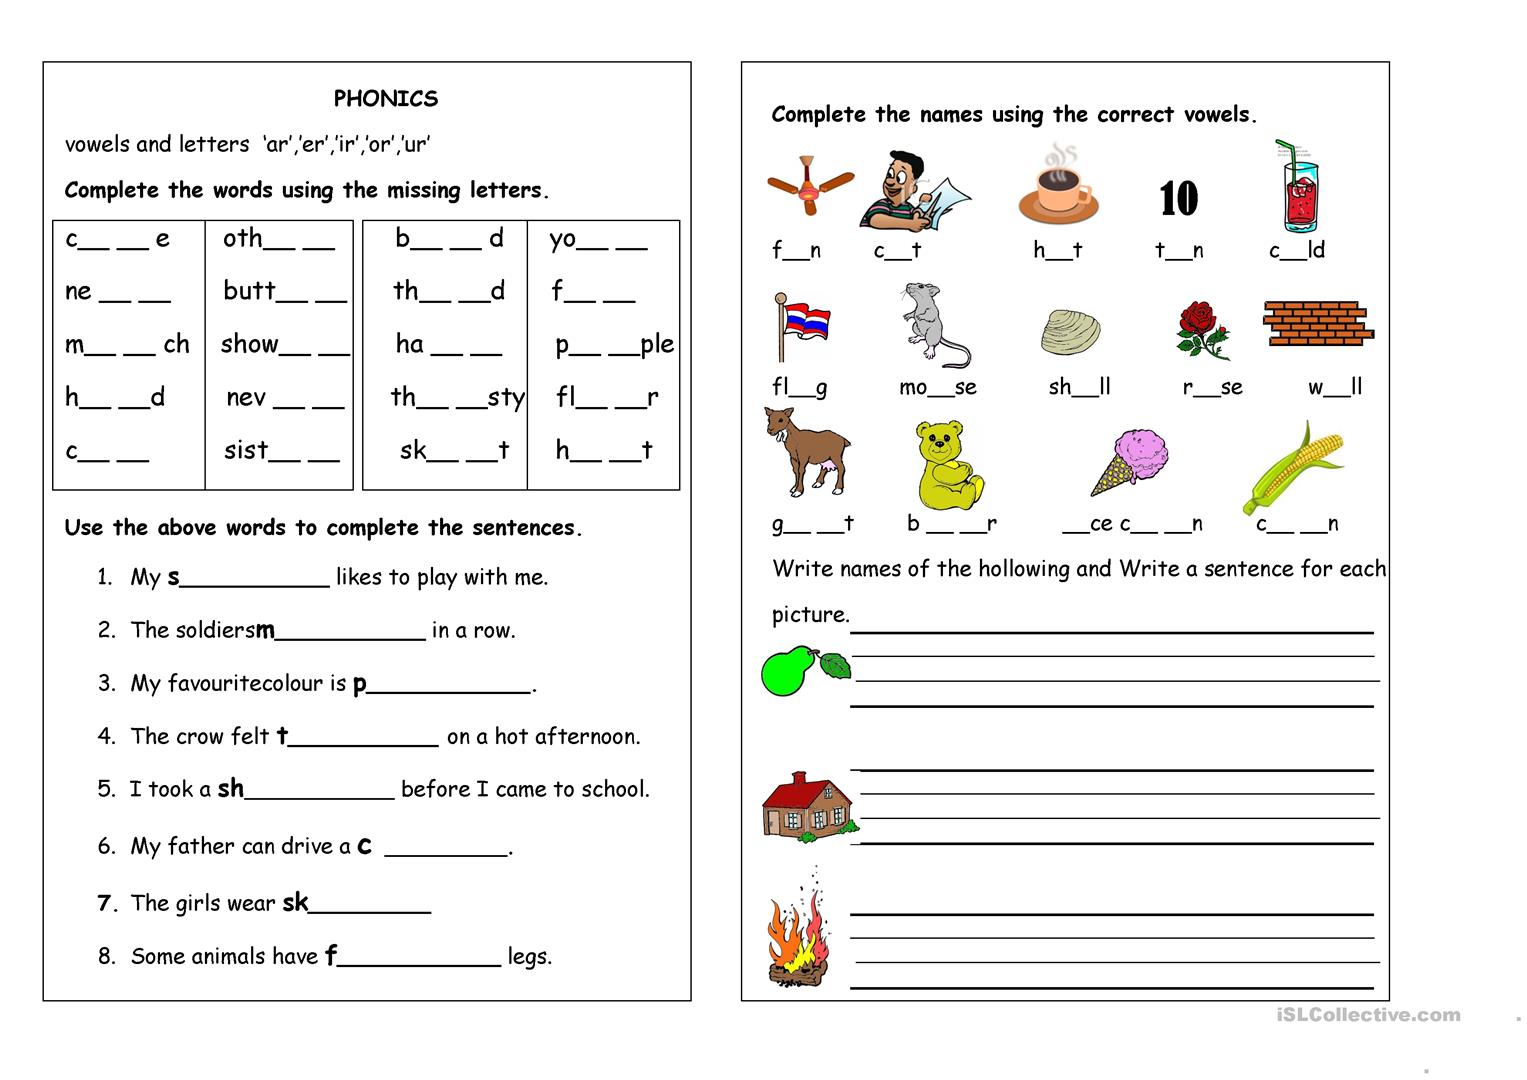 Free Elementary Phonics Worksheet